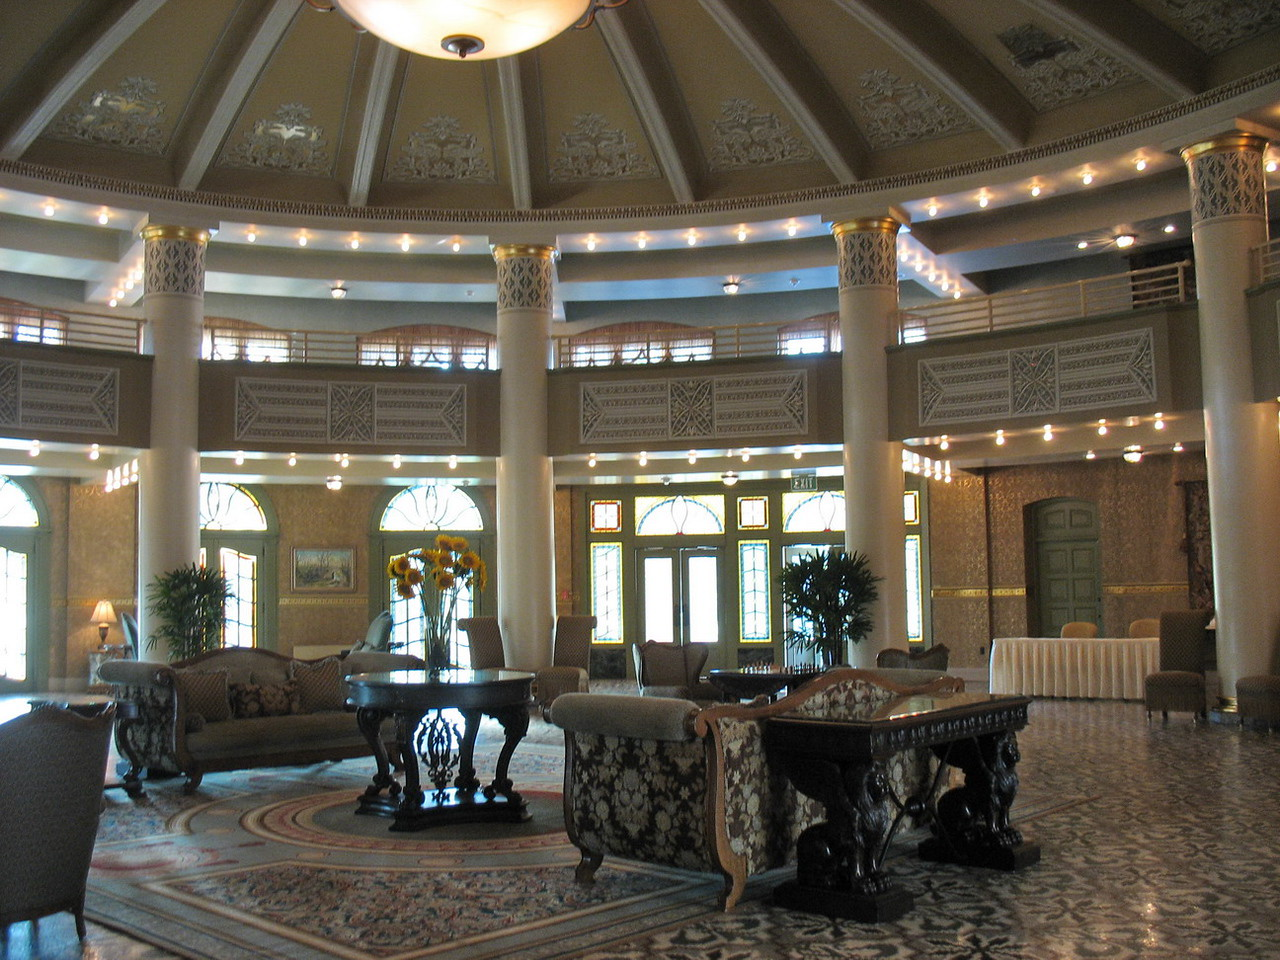 The hotel lobby. Registration desk to the right out of sight.